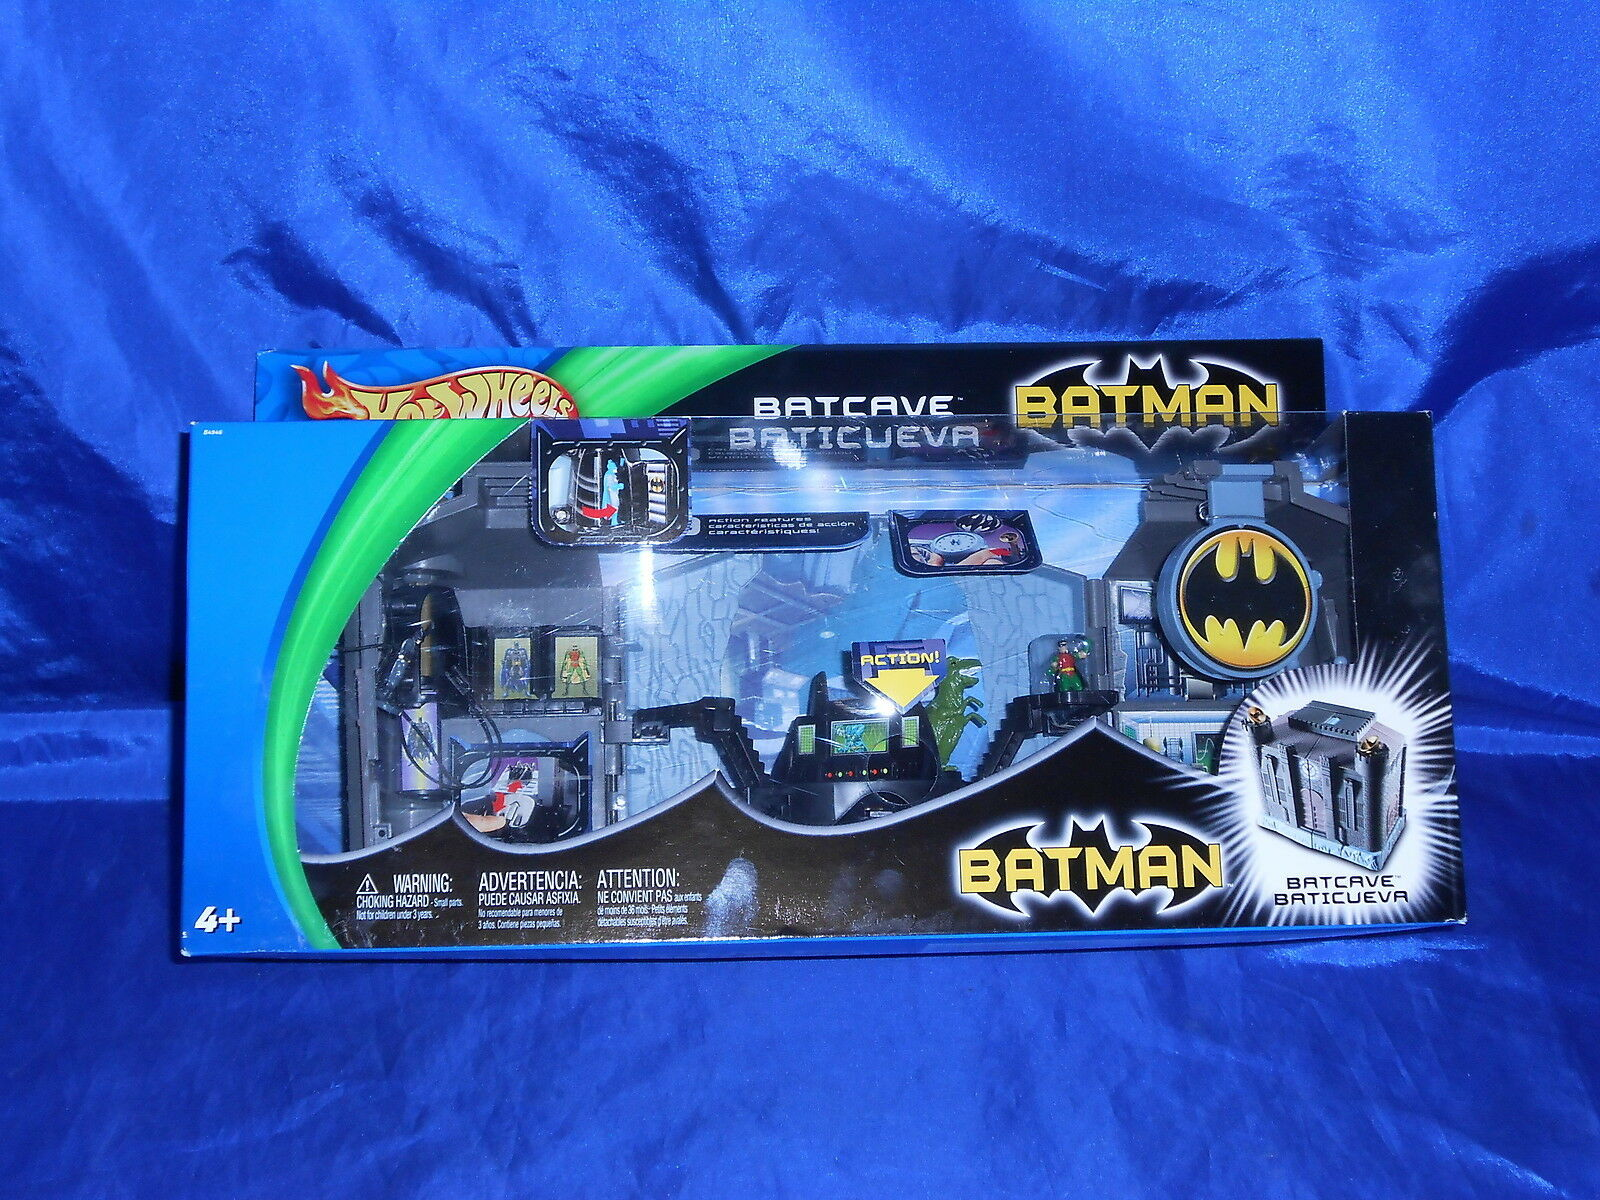 Batman Batcave Hot Wheels W/9 Action Figures Batcueva Still Sealed Mattel 2003